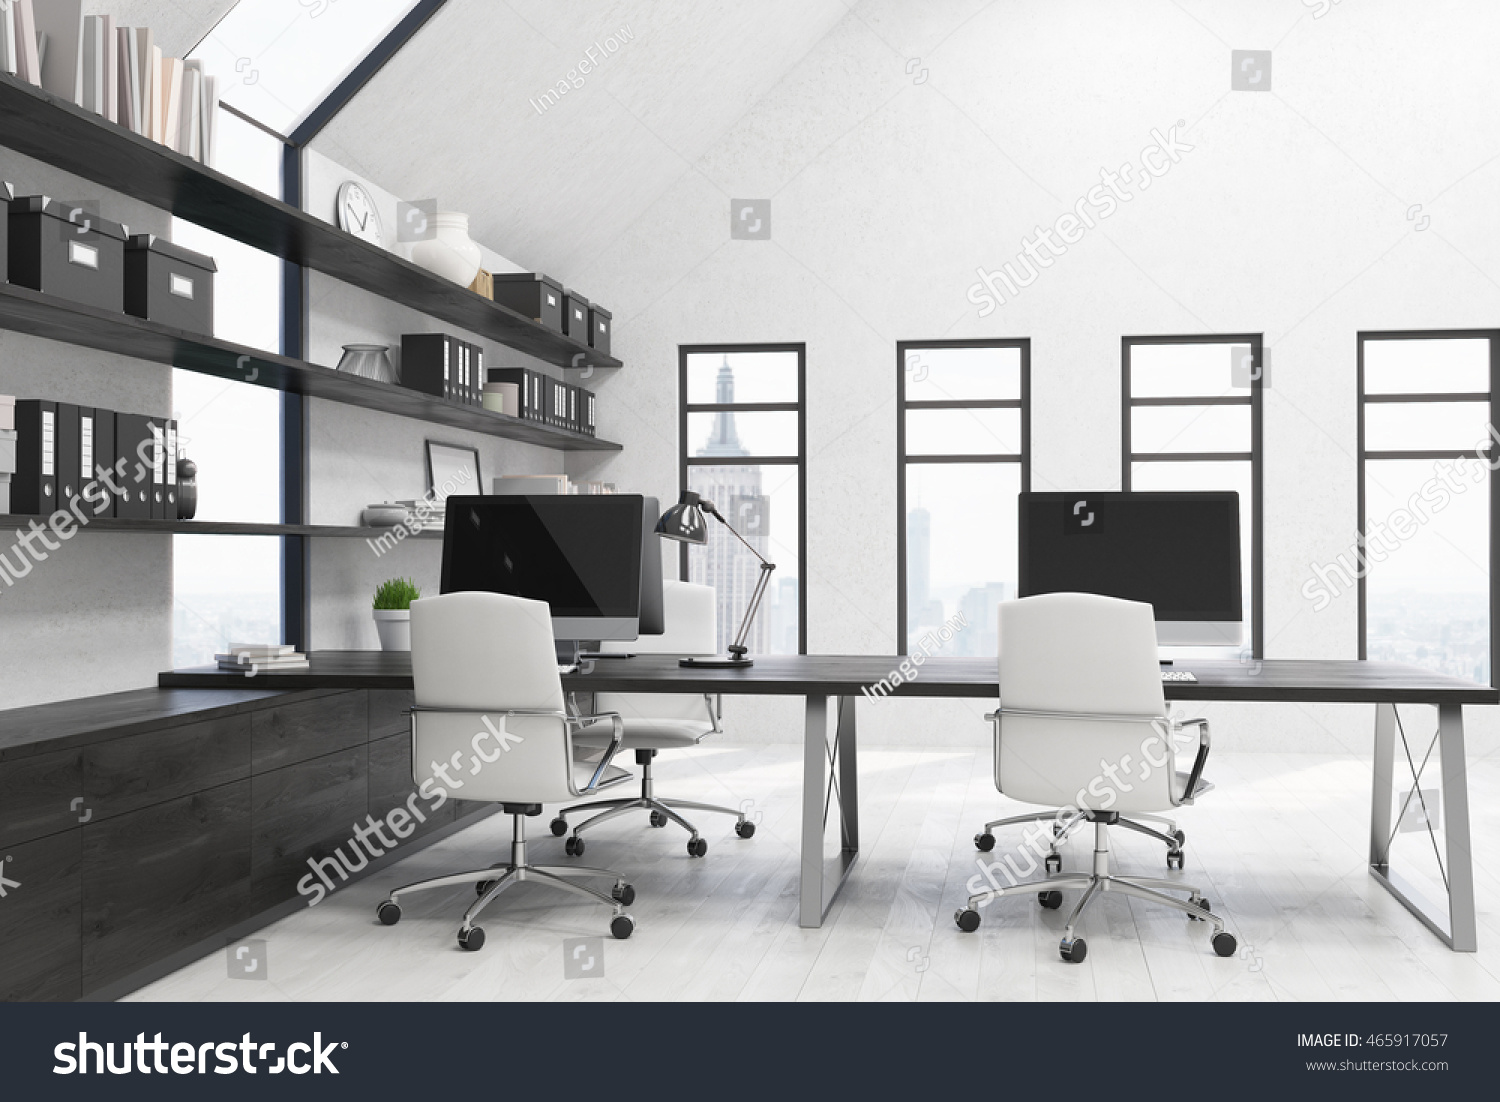 office workstations desks. New York City Office With Workstations On Desks, White Armchairs And Boxes Binders Desks